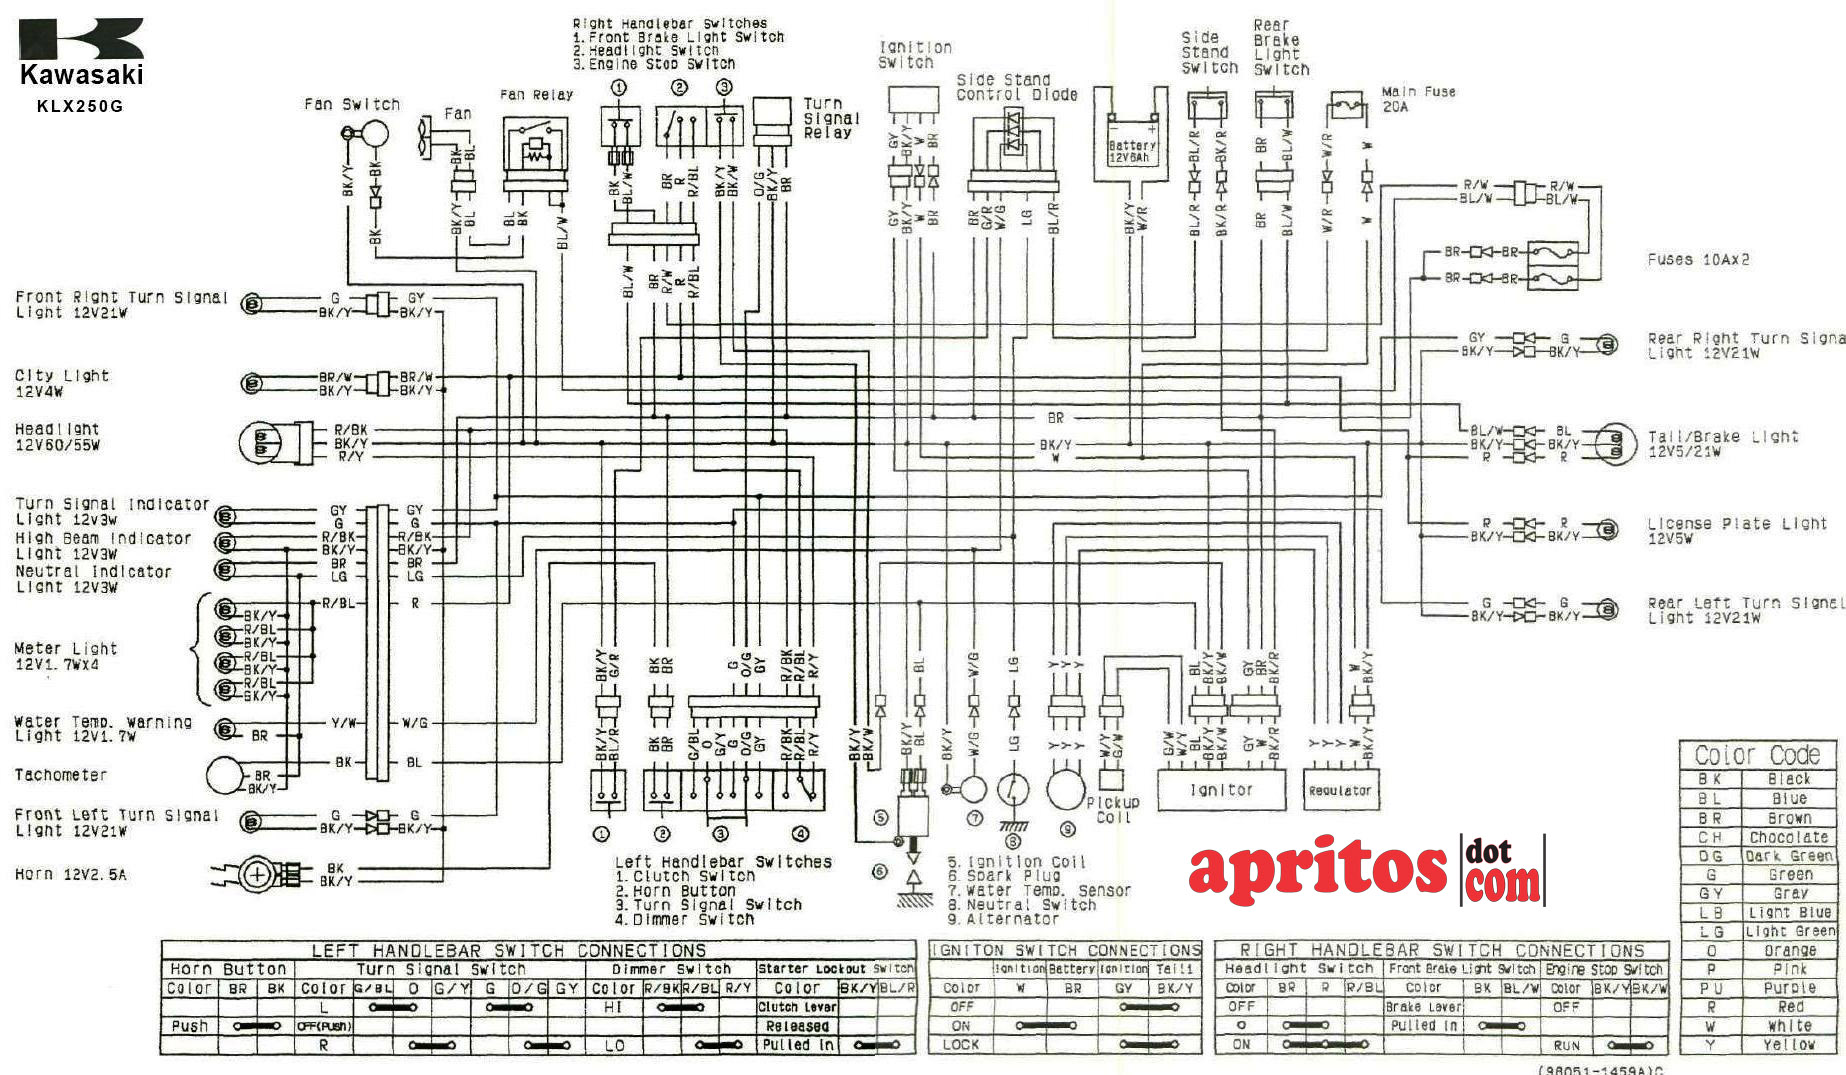 Wiring diagram kelistrikan mobil wiring diagram and fuse box auto ch ion peduli curanmor seri in addition electric doorbell wiring diagram in addition wiring diagram cheapraybanclubmaster Image collections